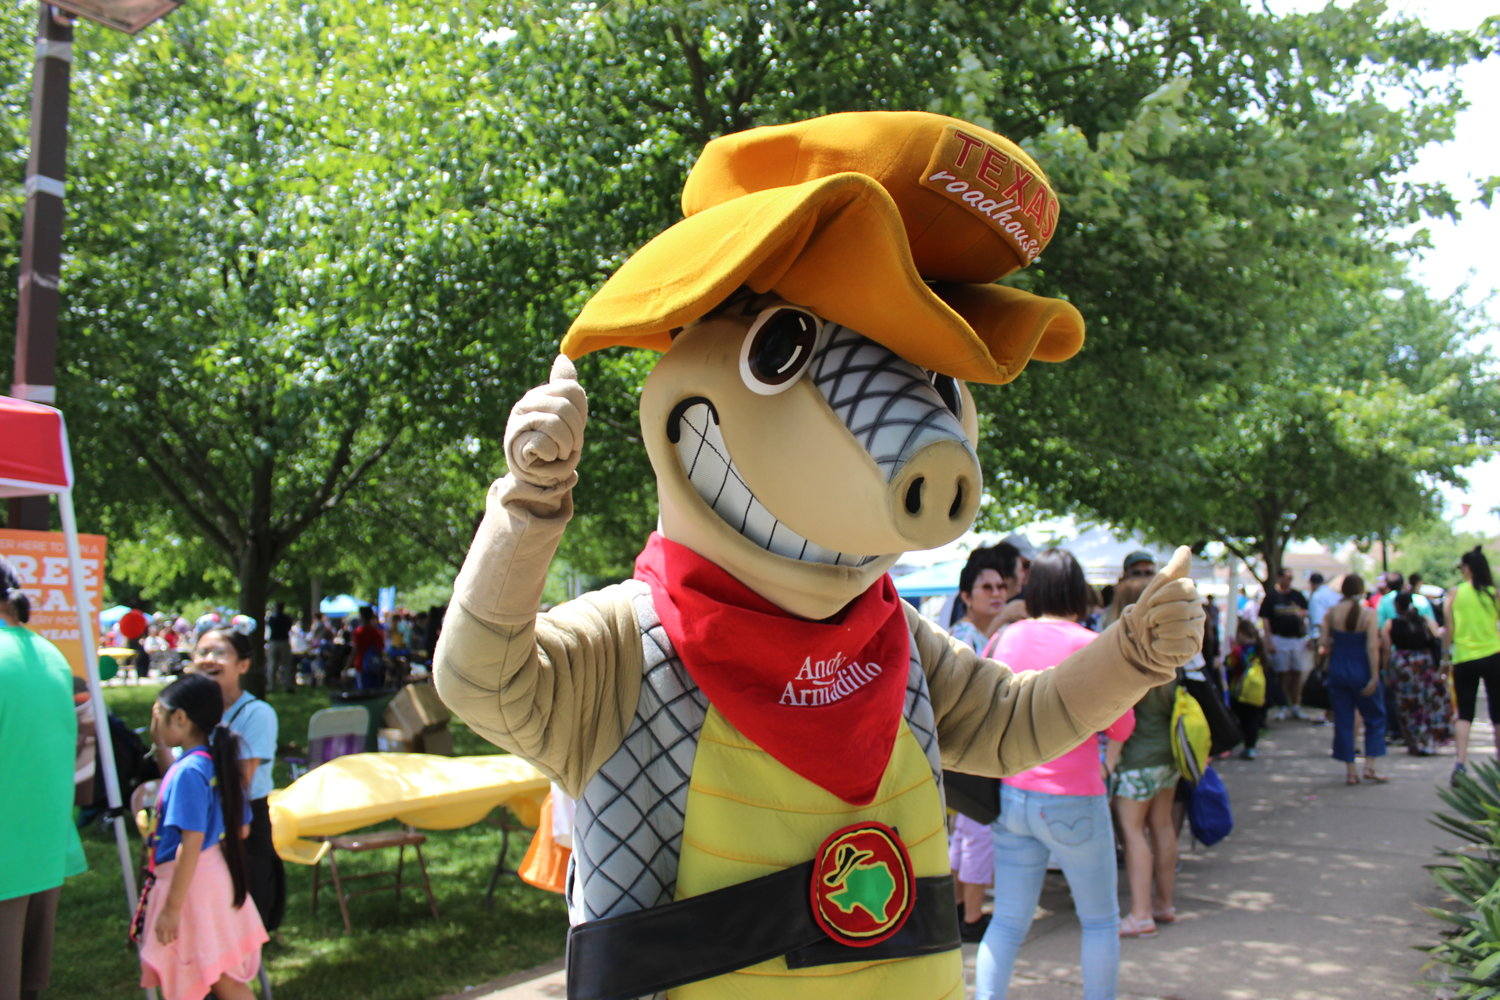 Andy the Armidillo from Texas Roadhouse got involved in the day's festivities.